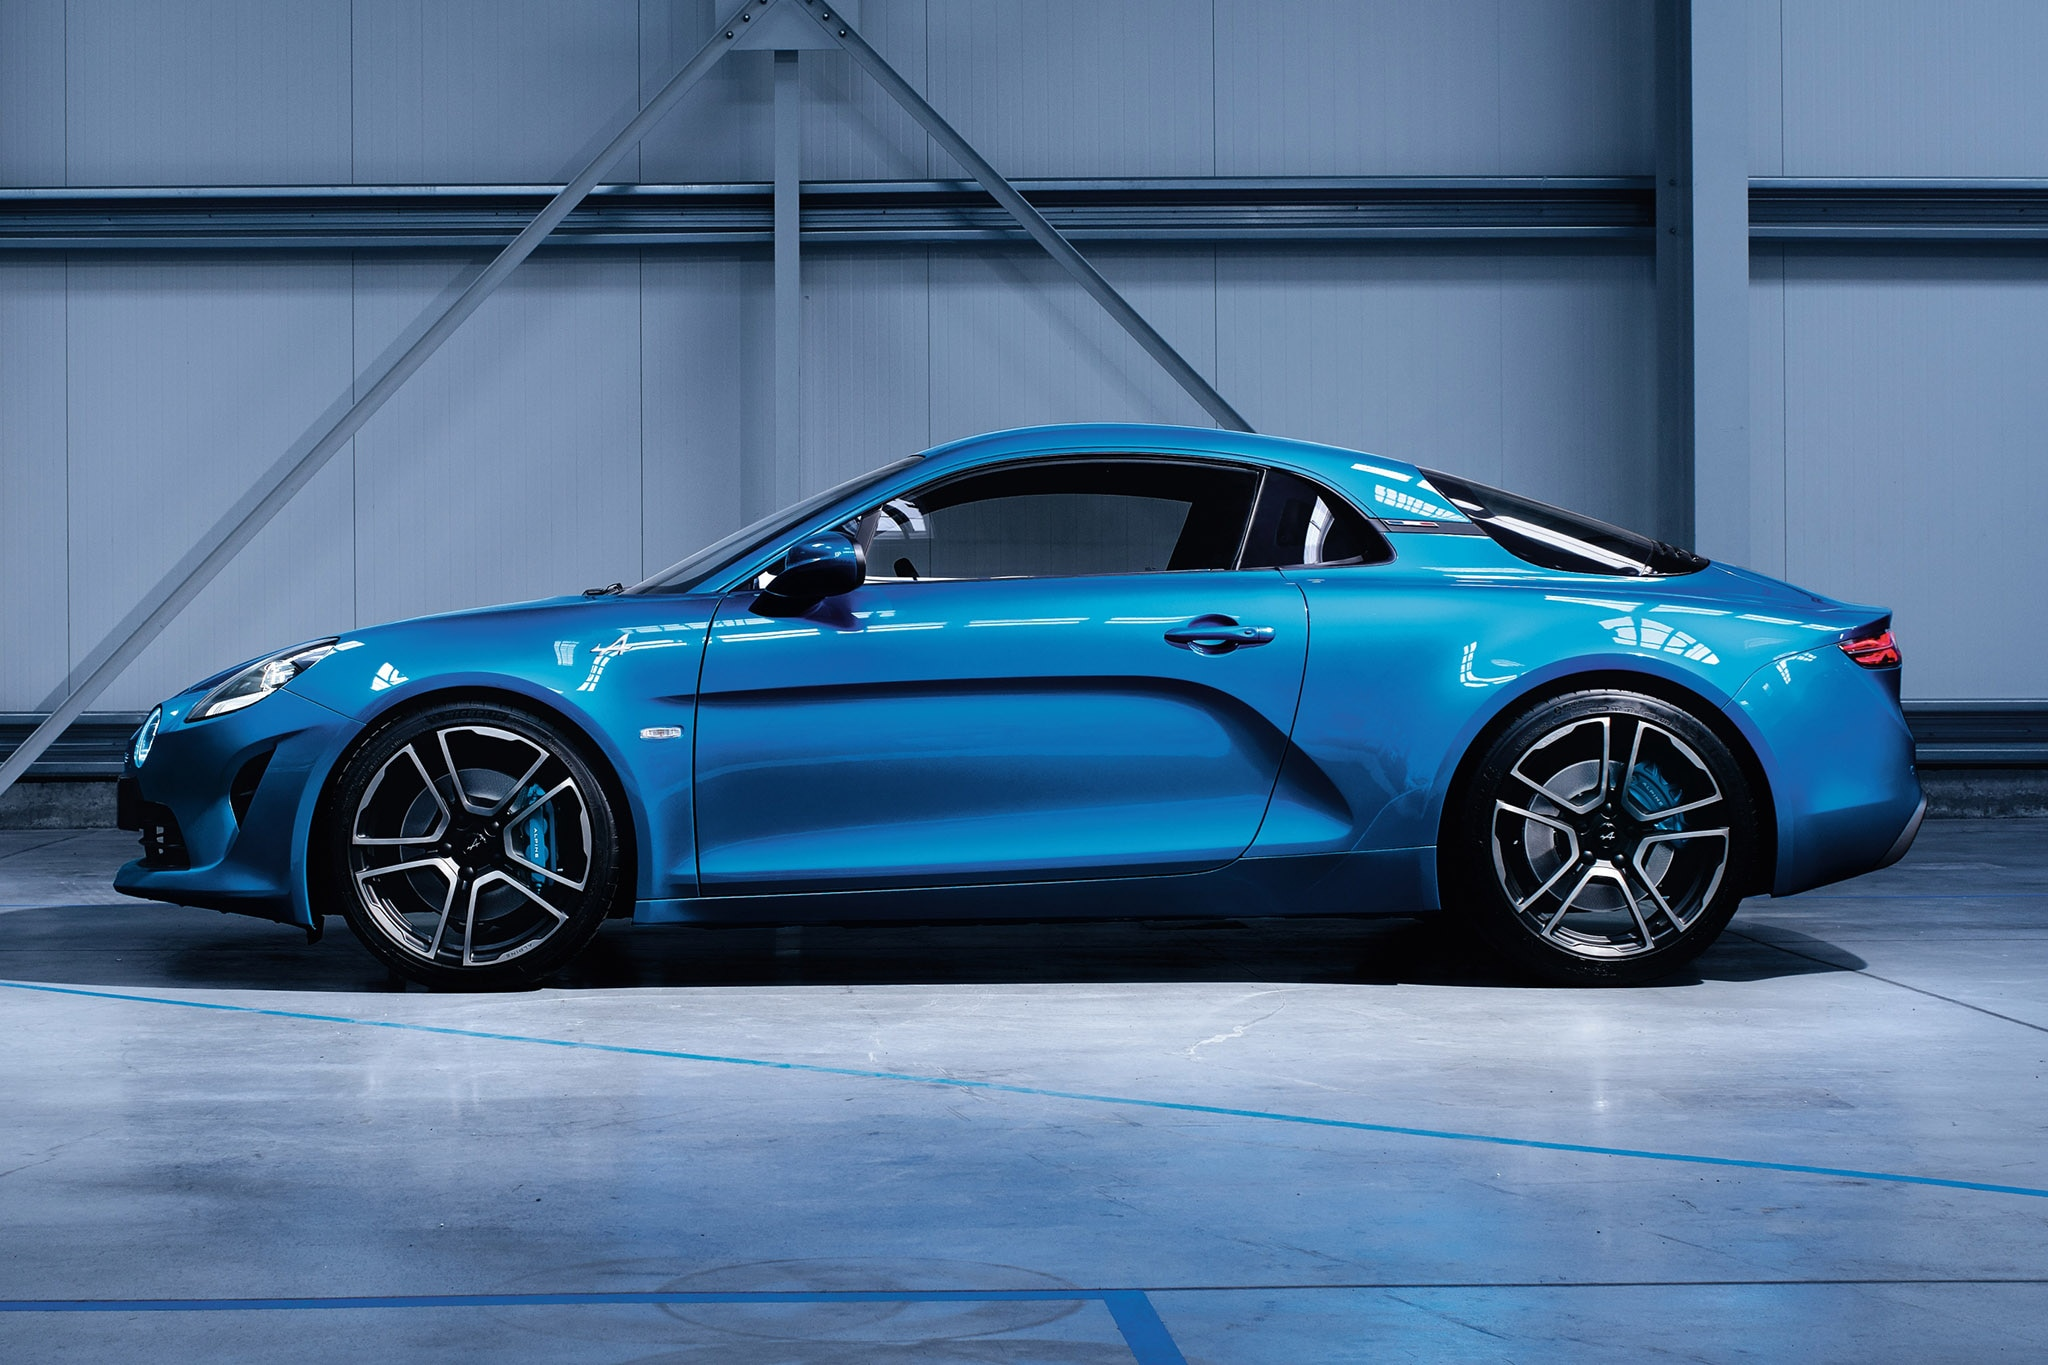 new renault alpine a110 production car to debut at 2017 geneva motor show automobile magazine. Black Bedroom Furniture Sets. Home Design Ideas